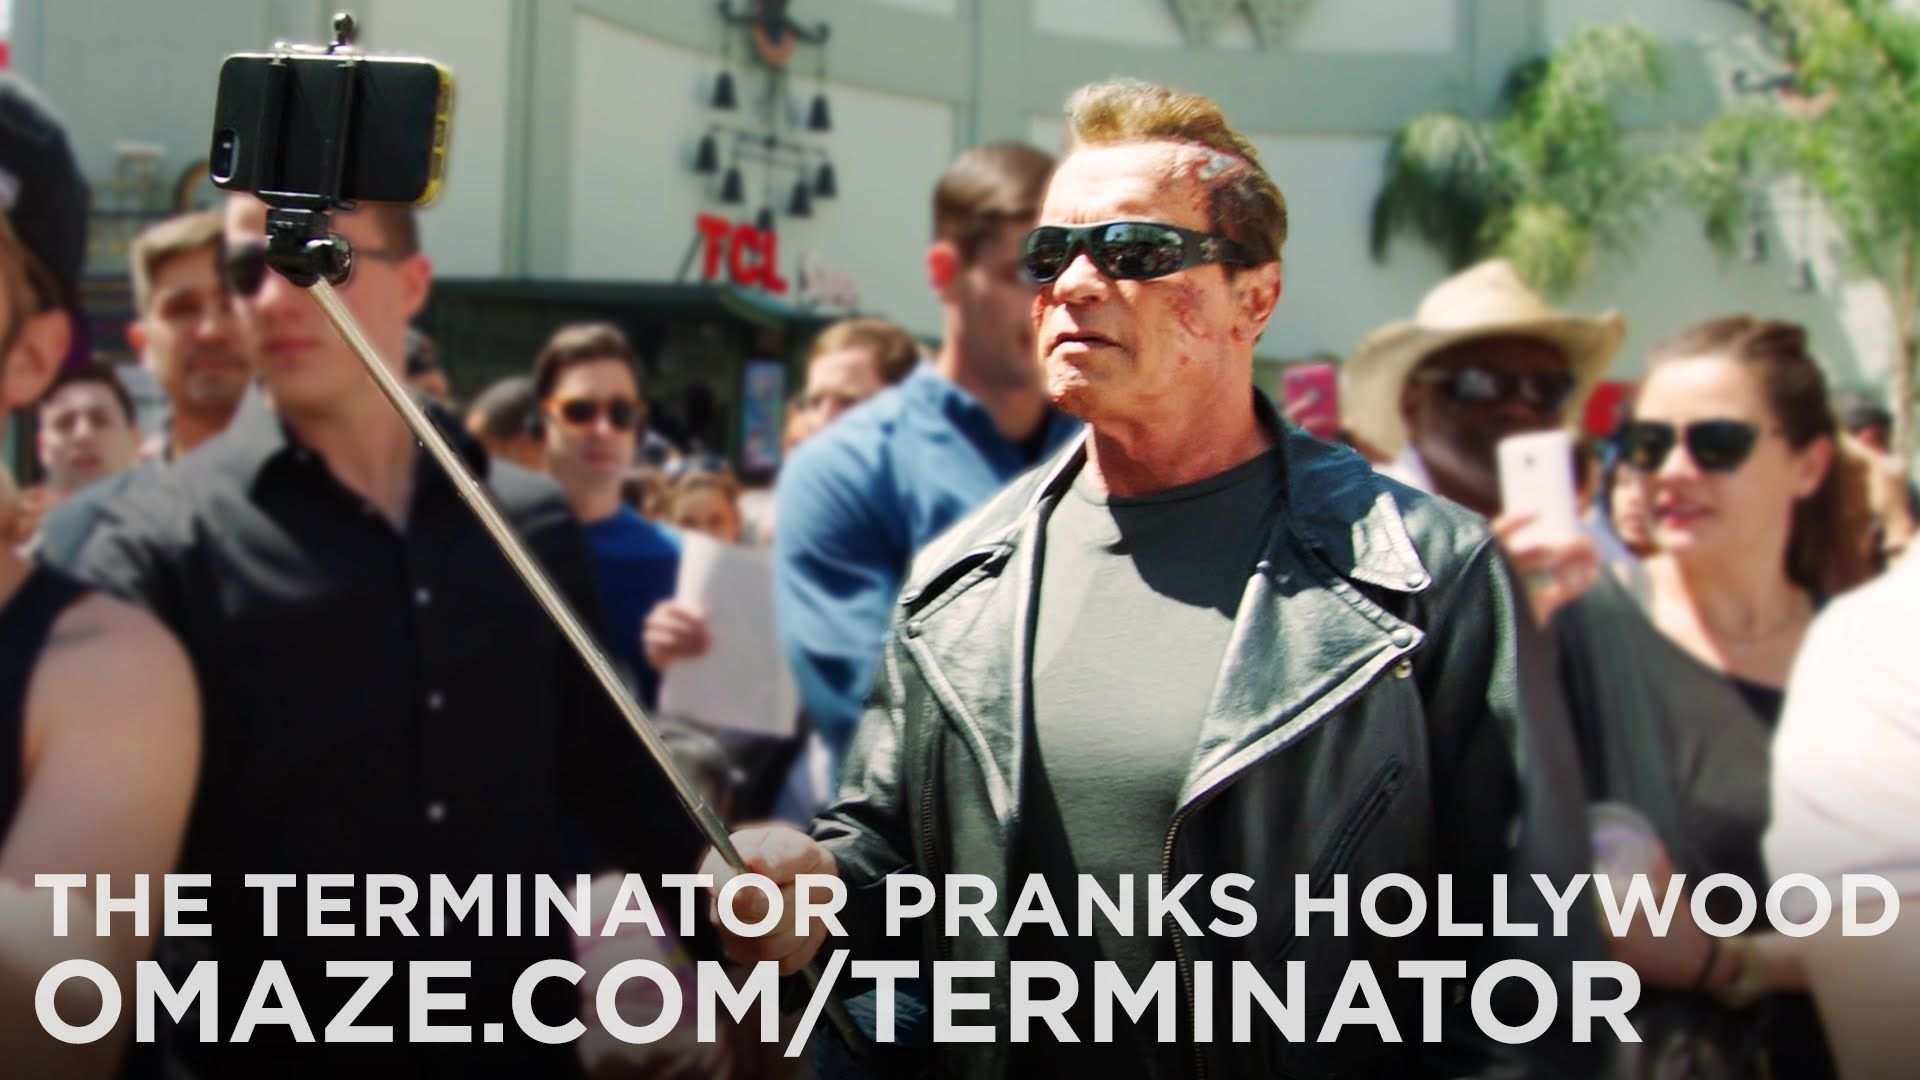 Arnold Pranks Fans as the Terminator ... for Charity